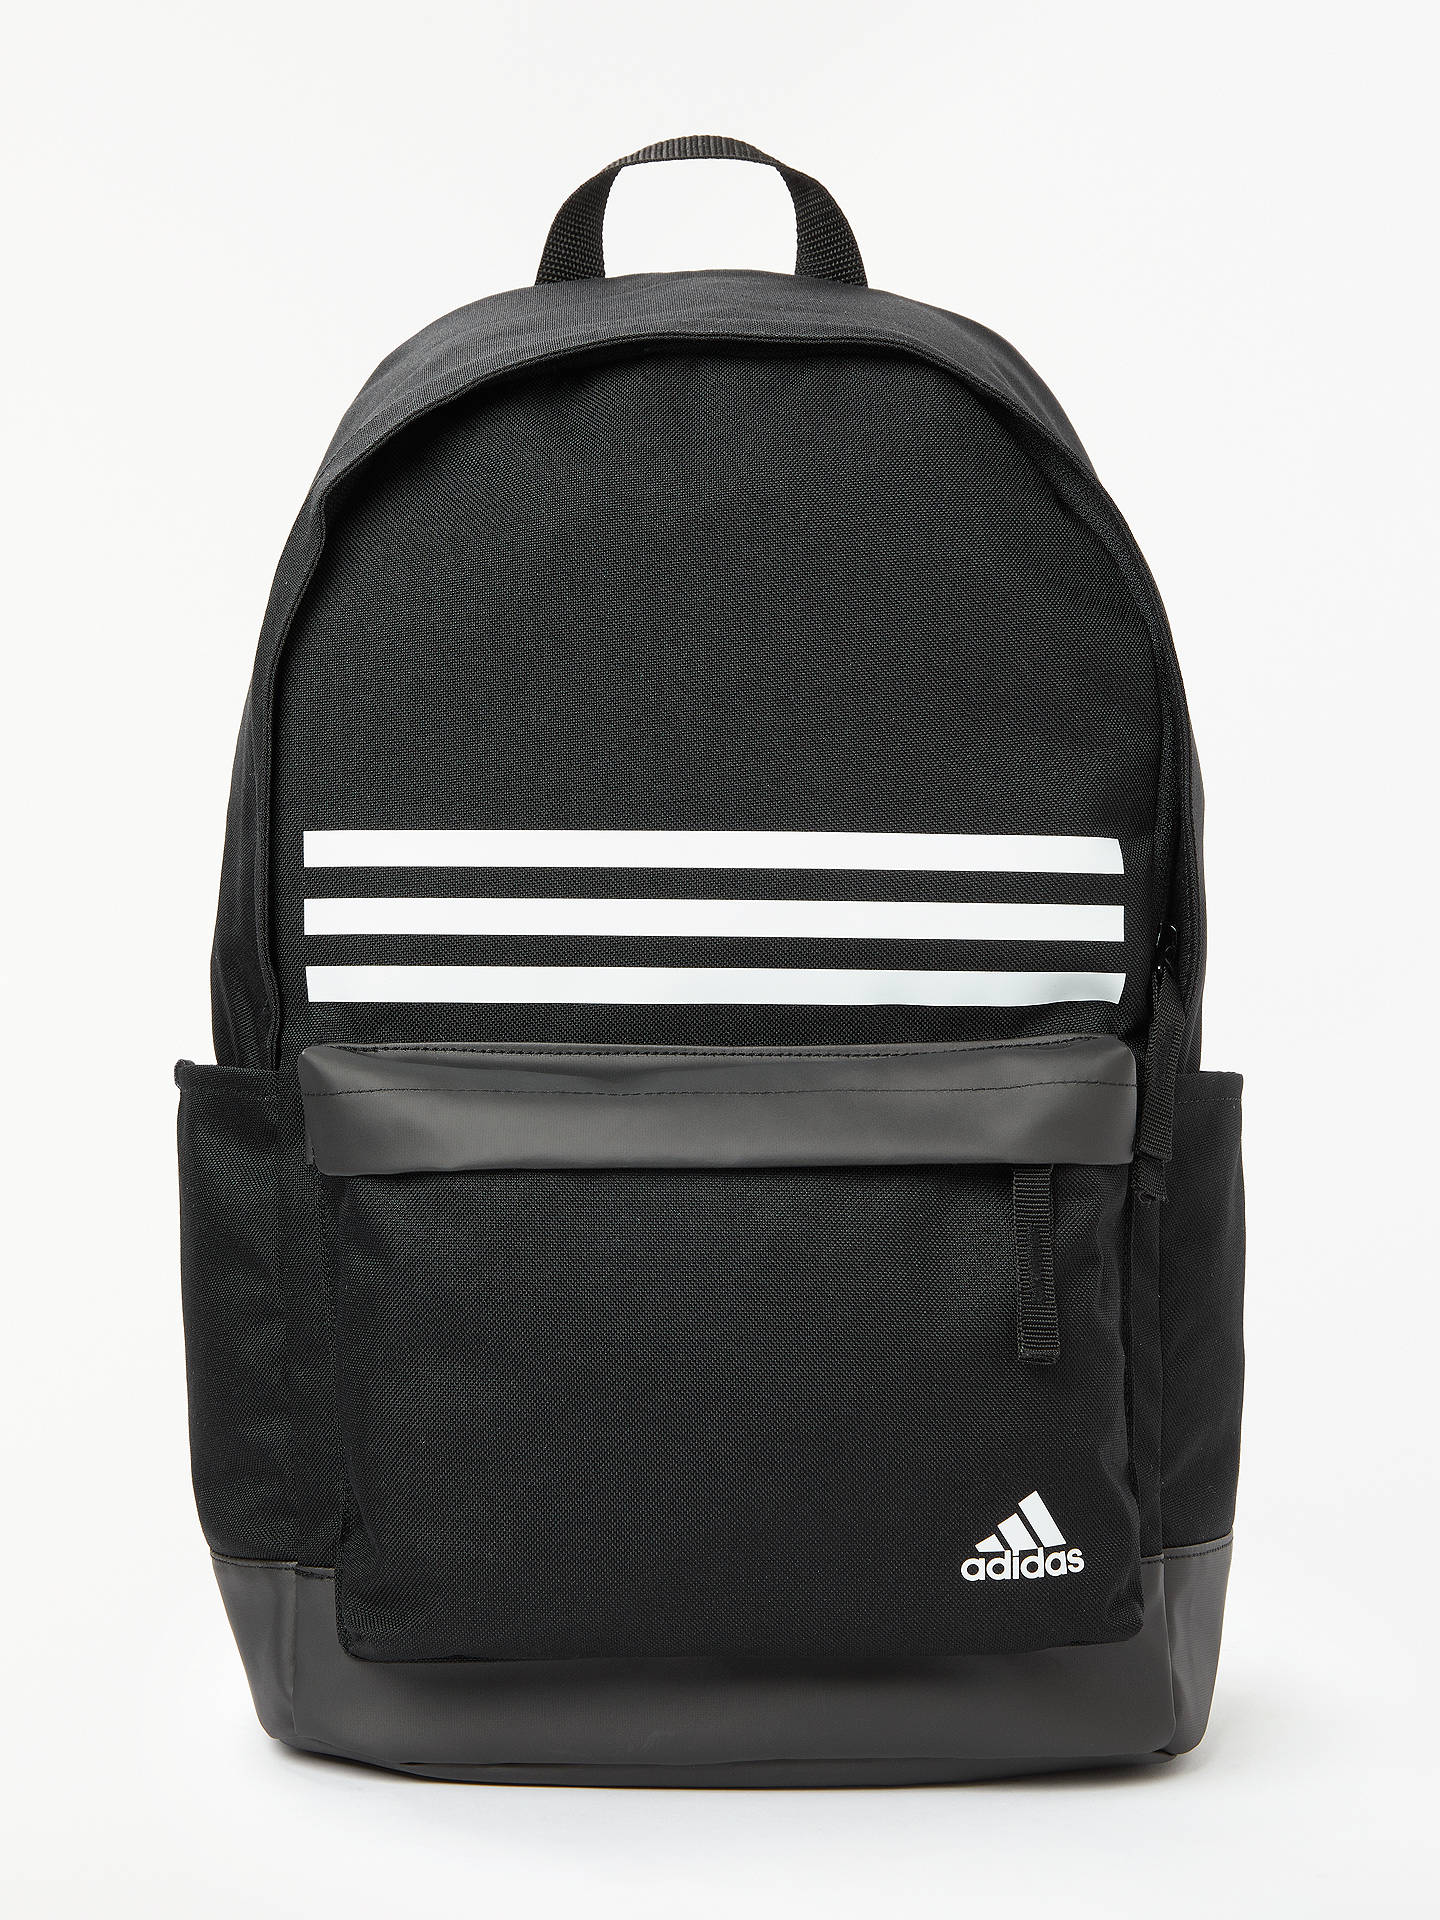 cb51a1a12a11 adidas Classic 3-Stripes Pocket Backpack at John Lewis   Partners